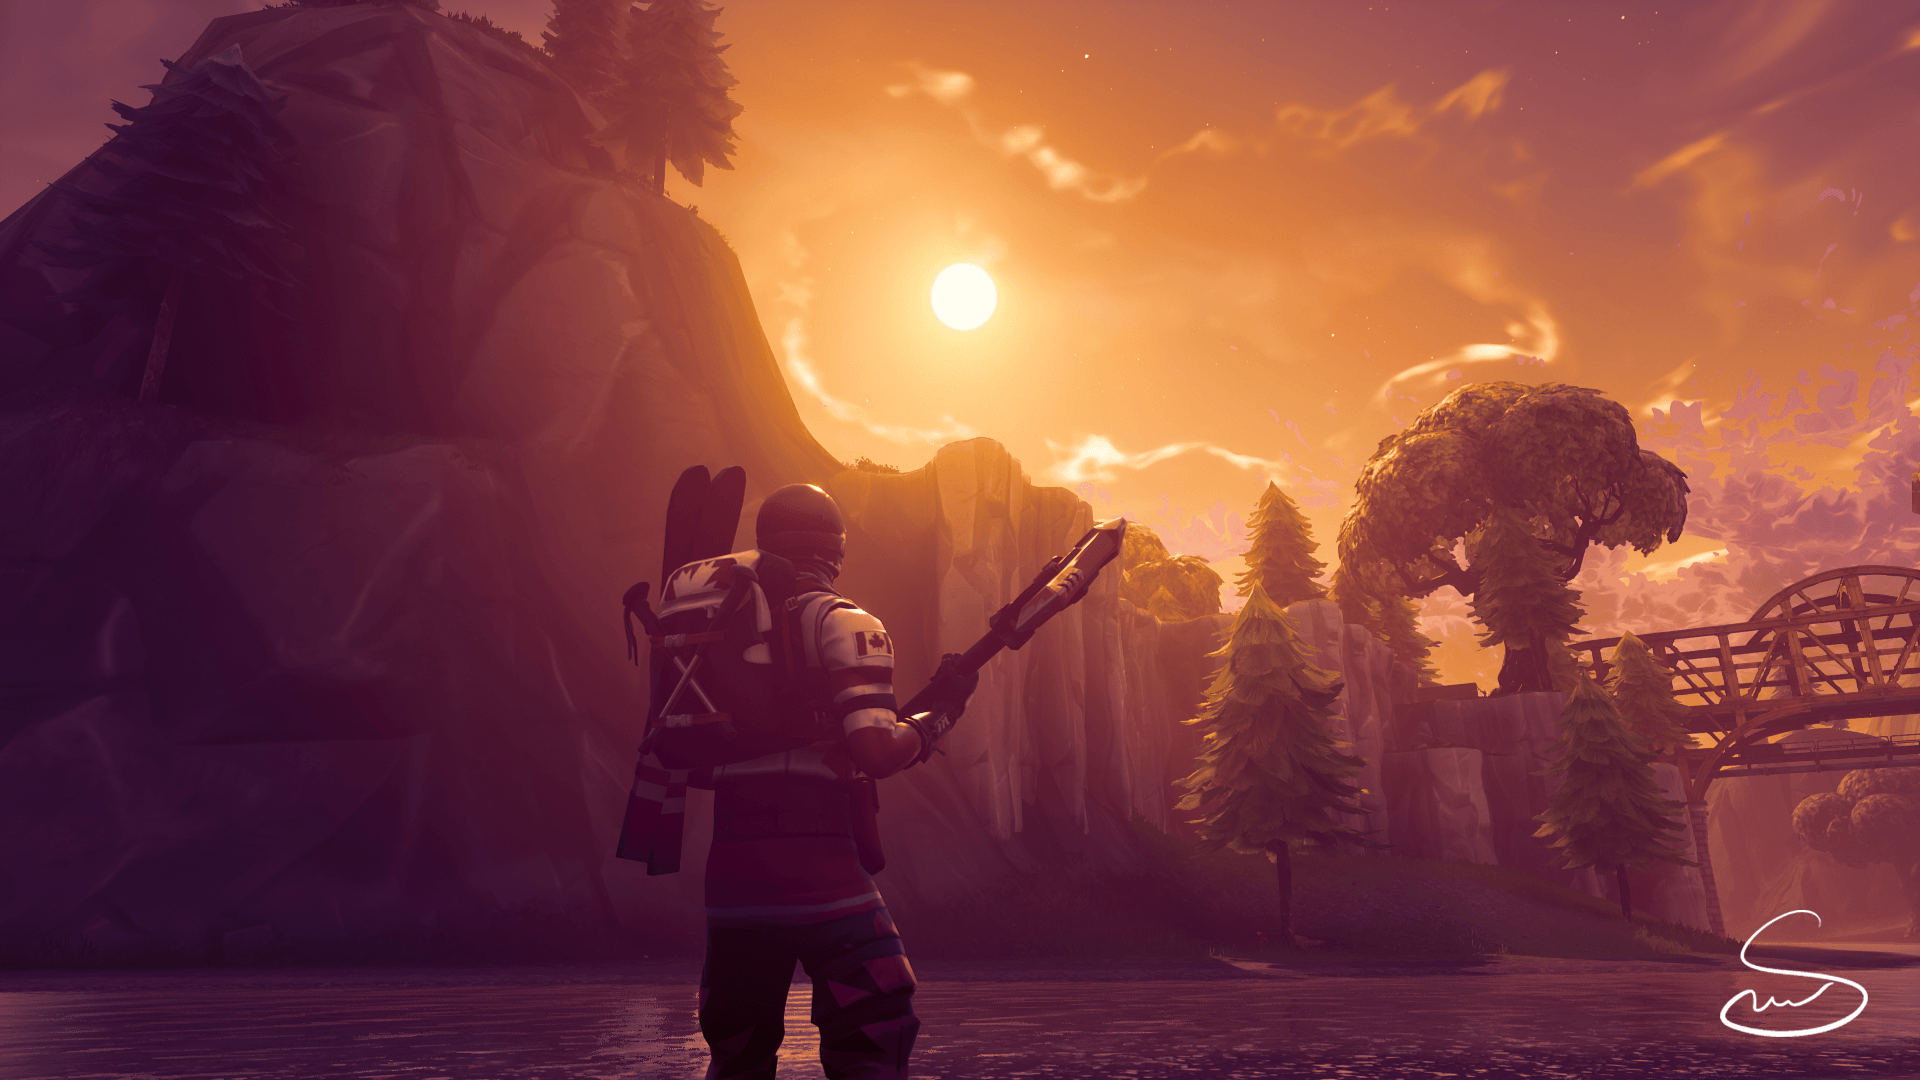 Renderbr Downloads Render Full Hd Playerunknown S: Fortnite Alpine Ace Wallpapers